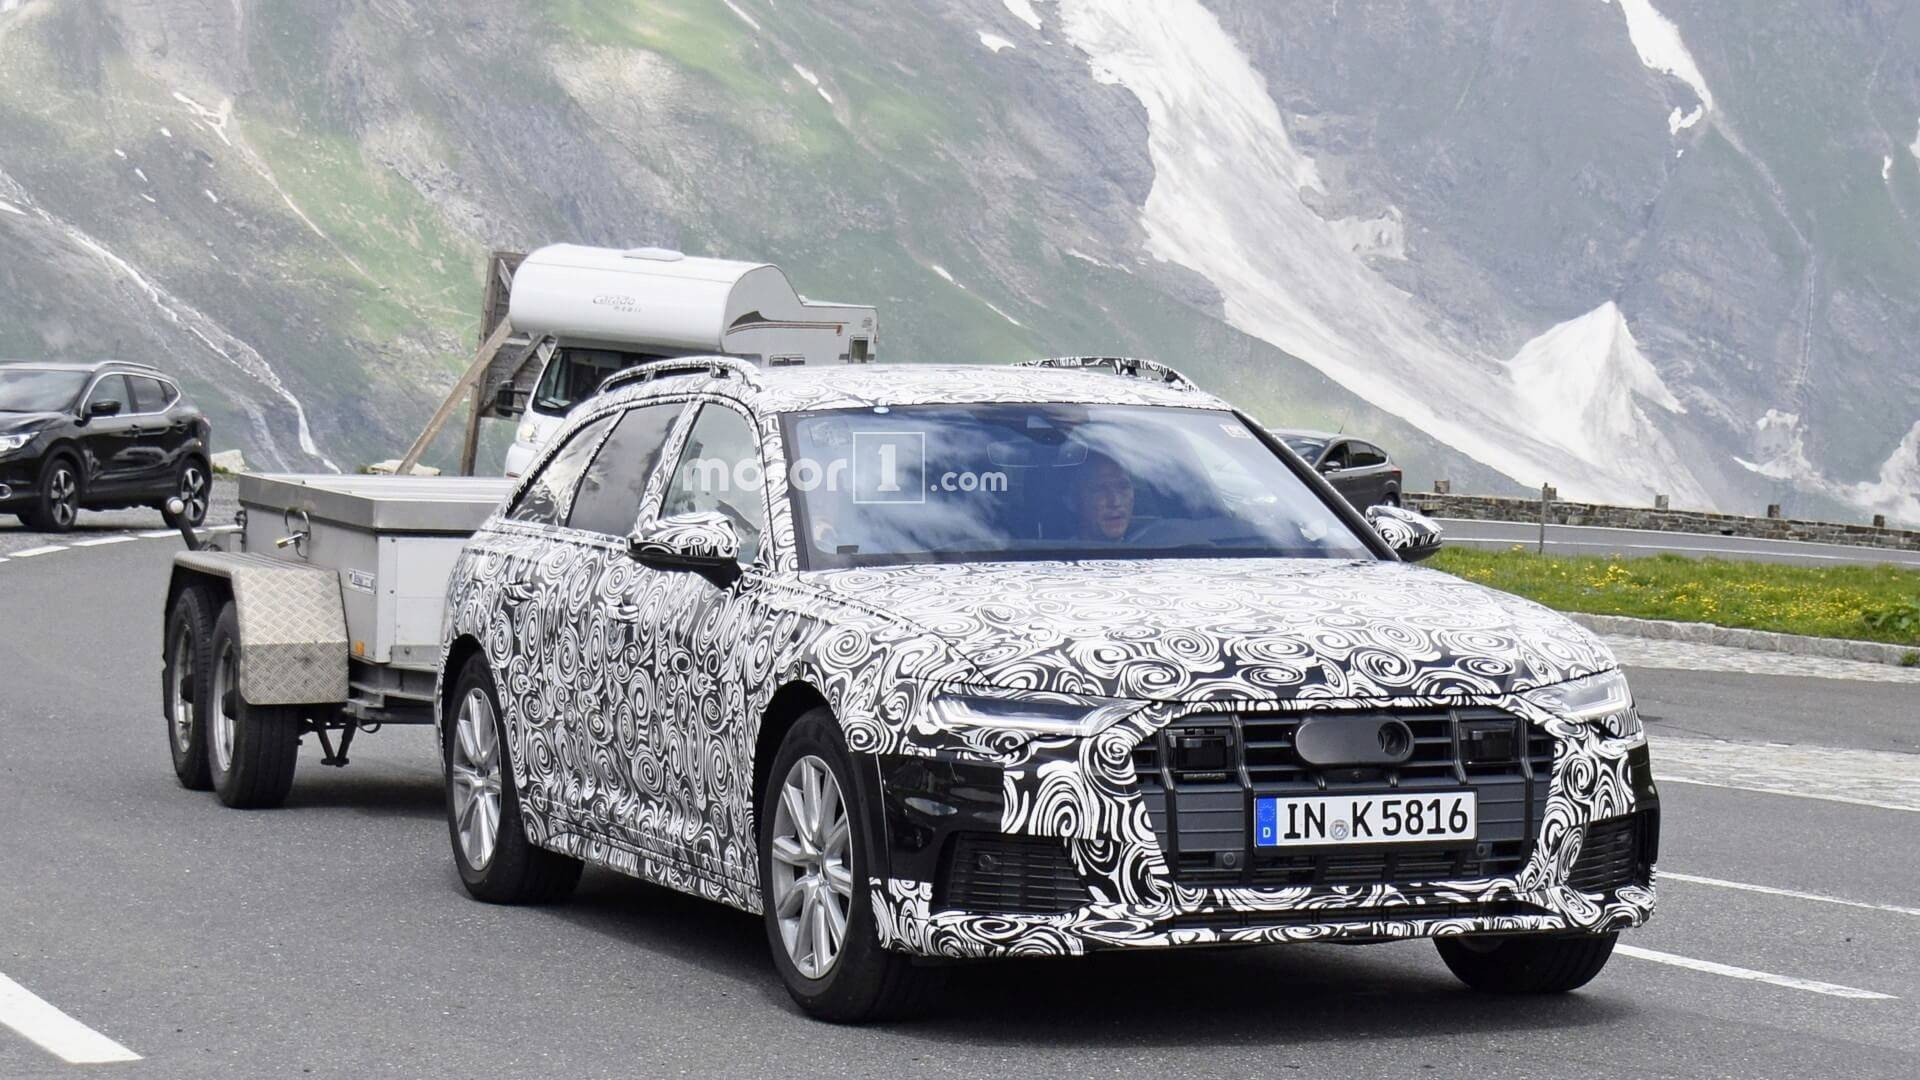 Audi A6 Allroad Bmw 3 Series Coming To Paris Motor Show